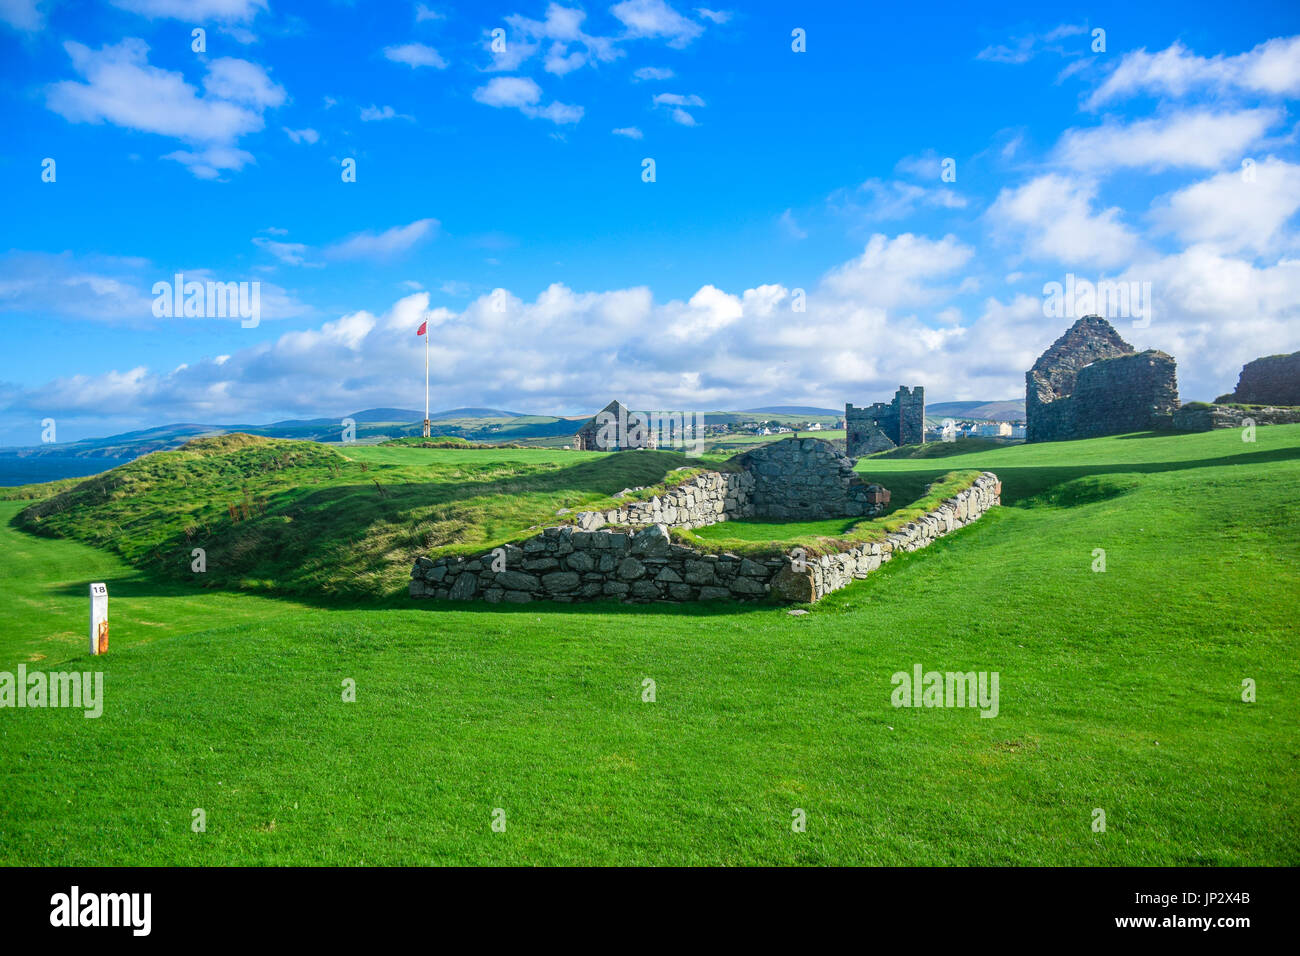 Scenery view of Peel Castle constructed by vikings on top of Peel hill on a clear blue sky, Isle of Man - Stock Image